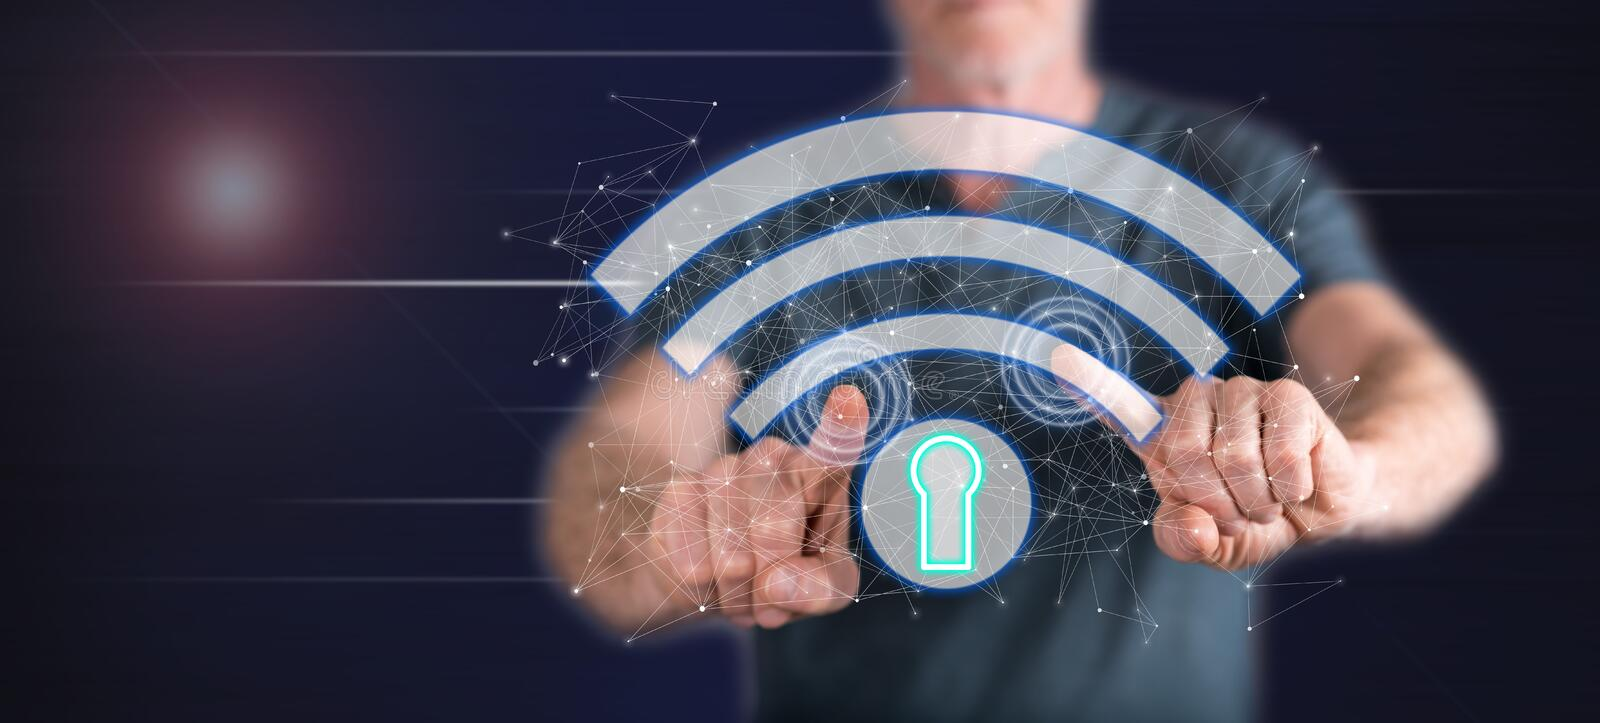 Man touching a wifi security concept royalty free stock photo